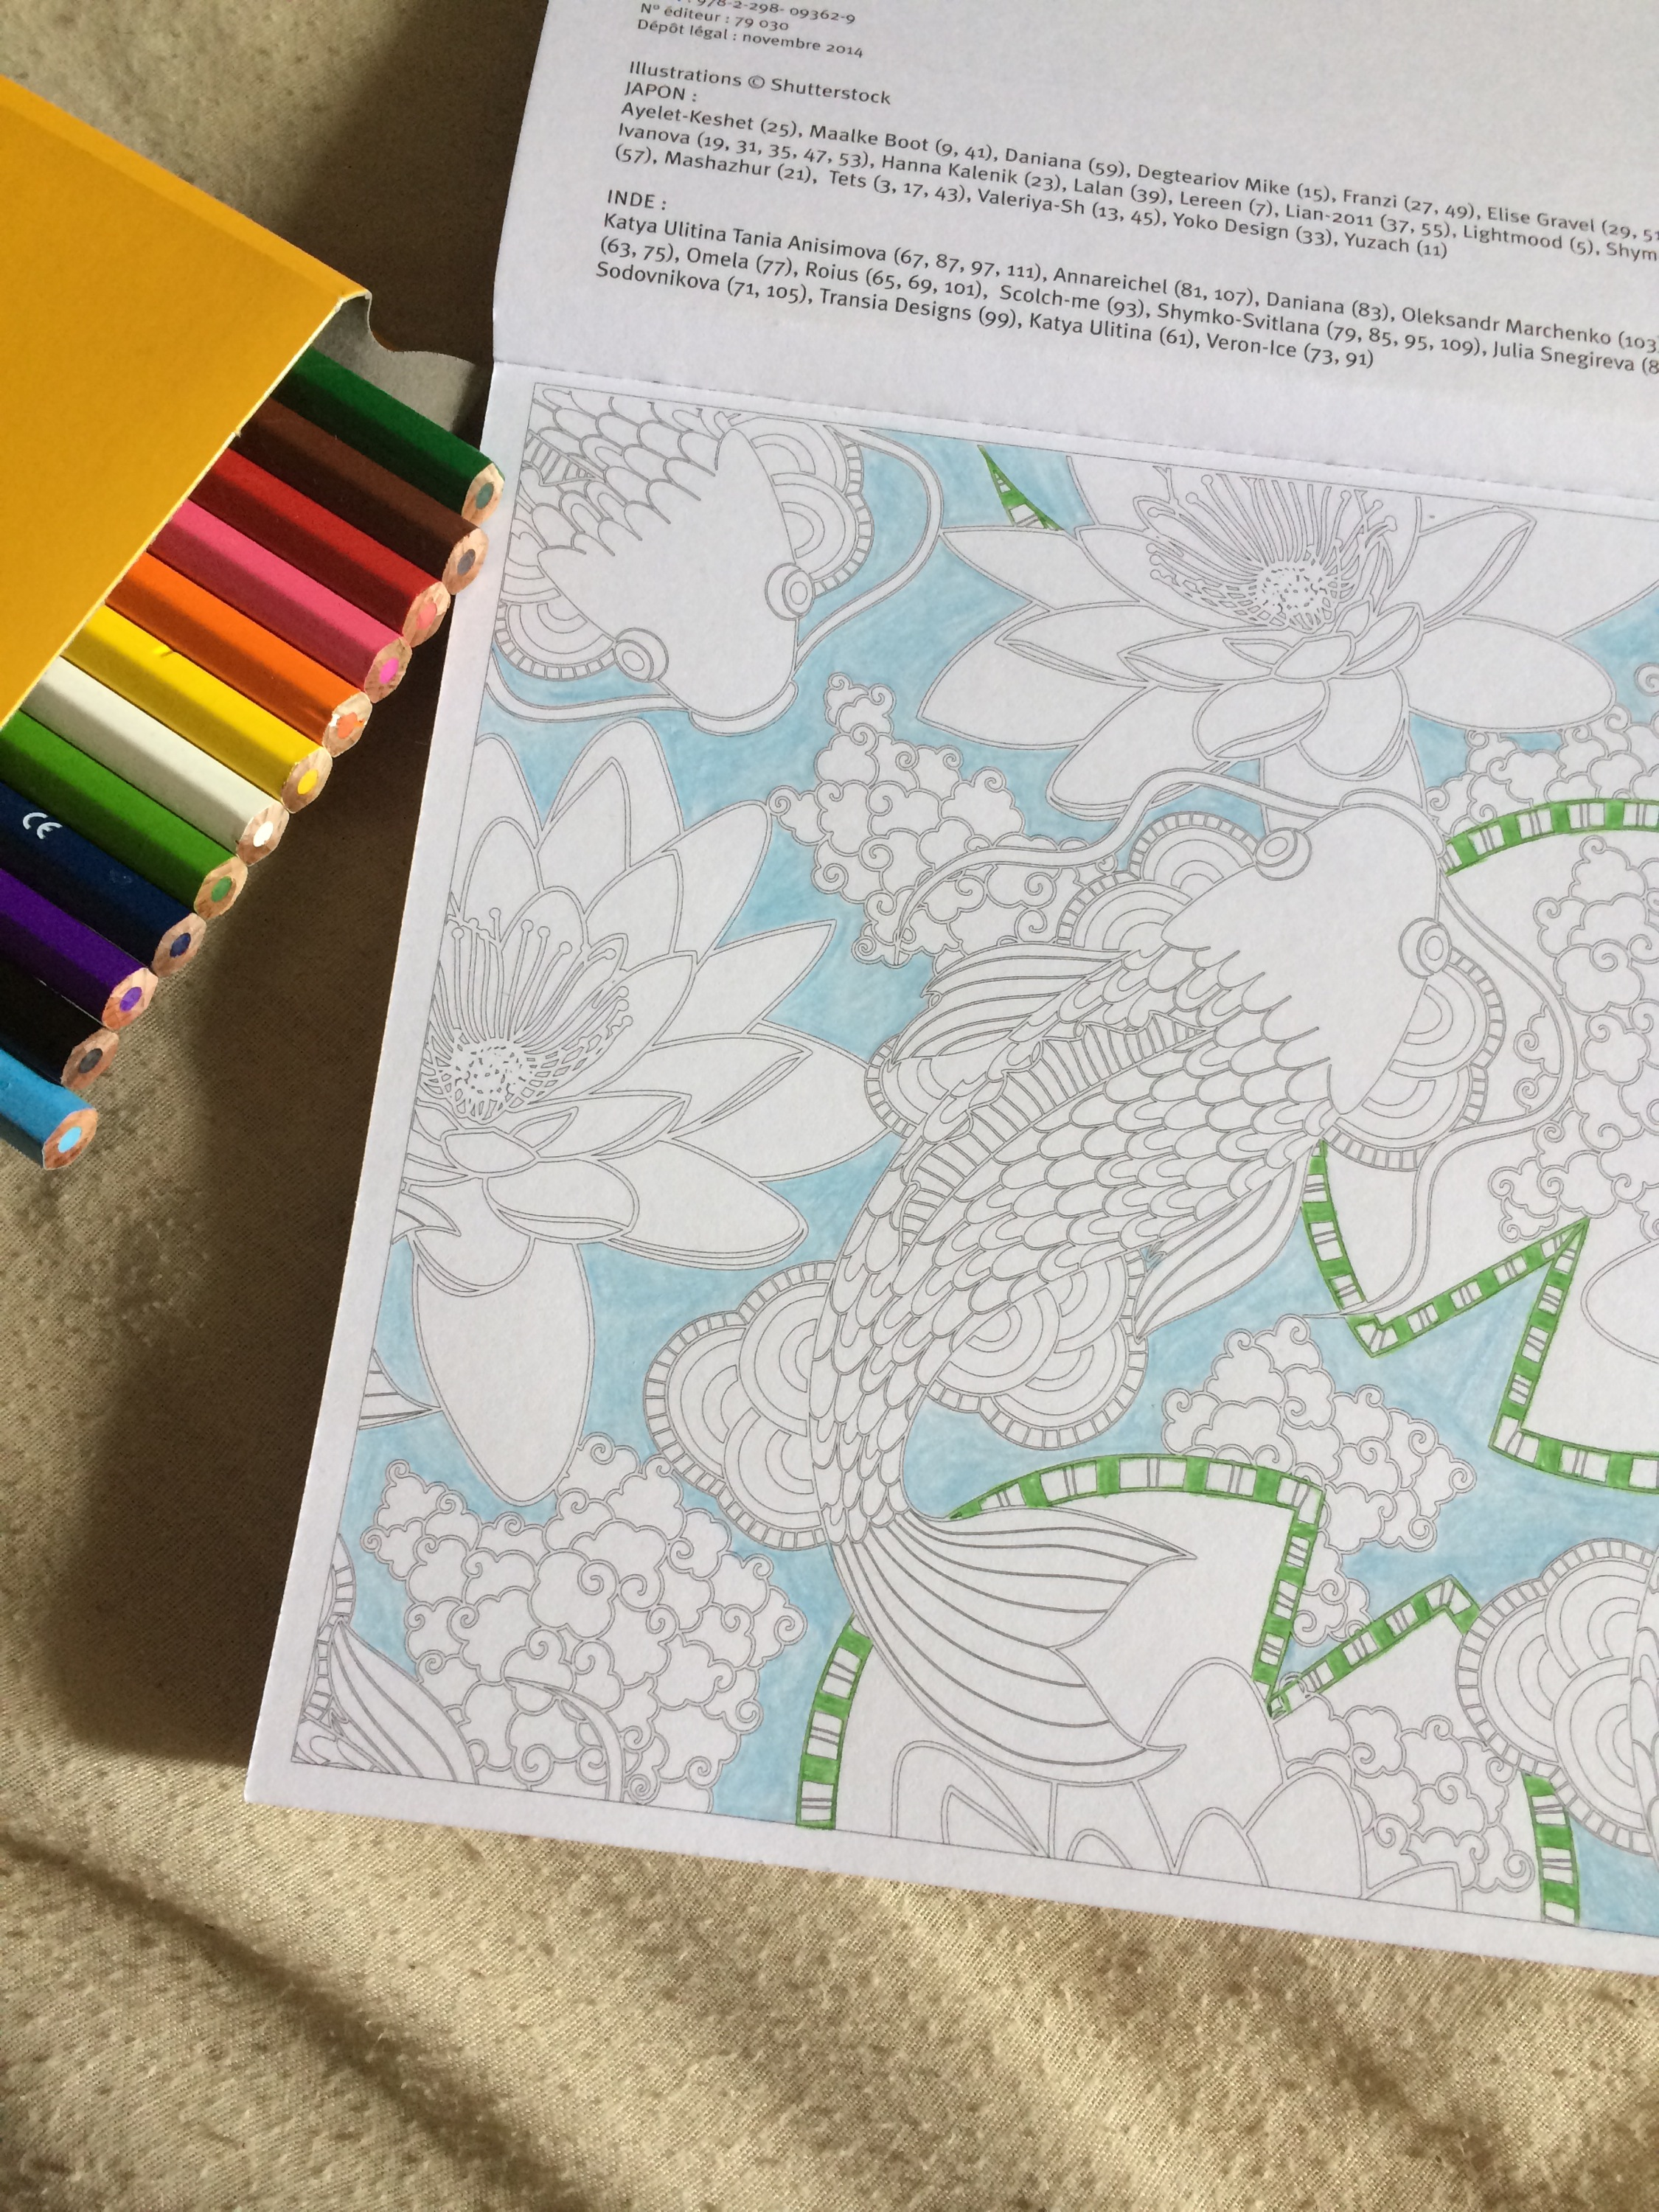 librairie-coloriage-livrs-book-anti-stress-bic-kids-crayons-couleurs-colors-japon-inde-lotus-carpe